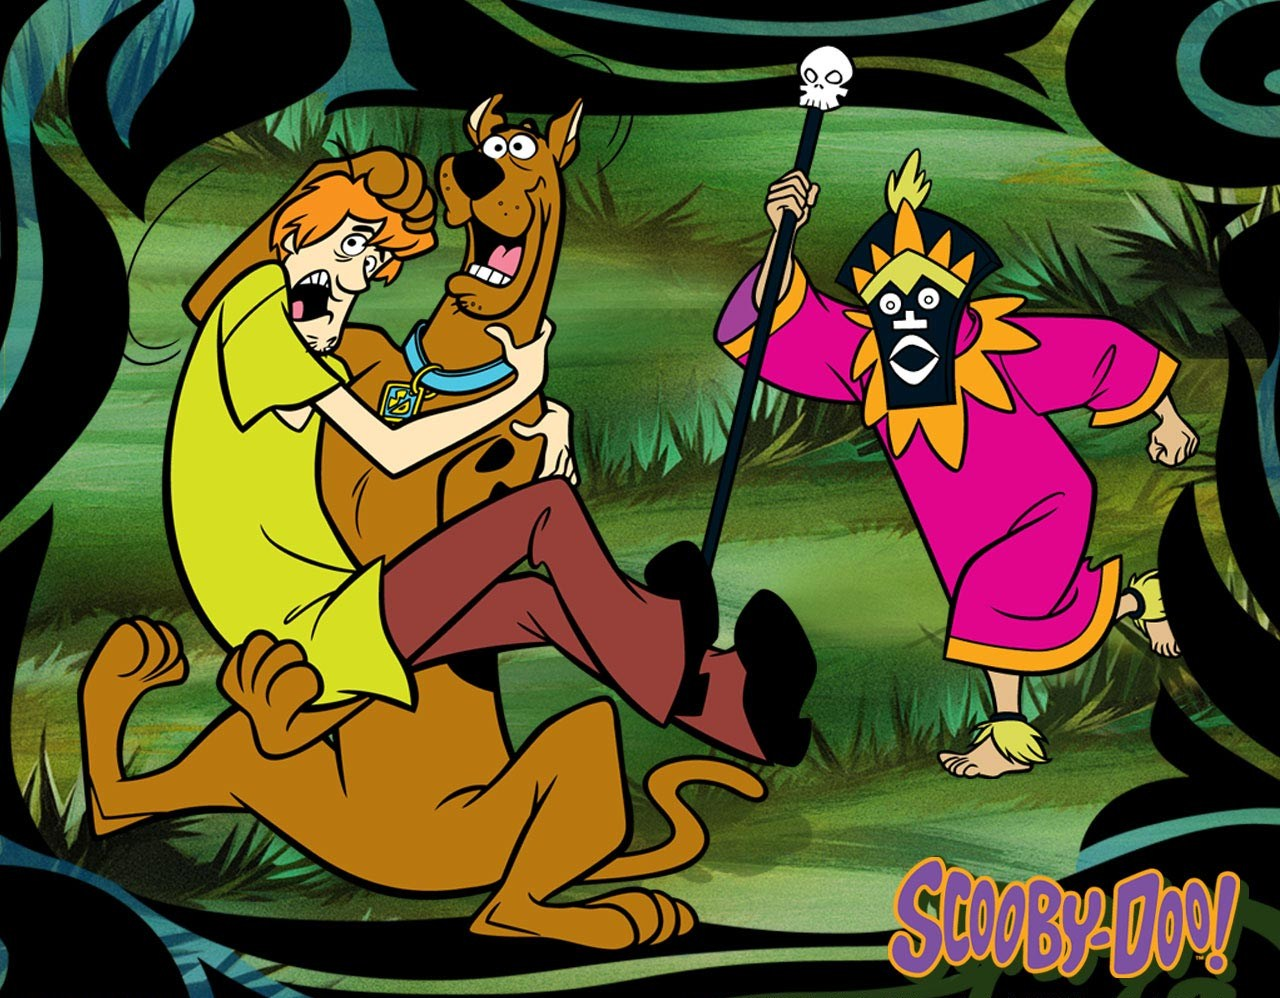 Scooby doo Wallpaper: Scoobydoo